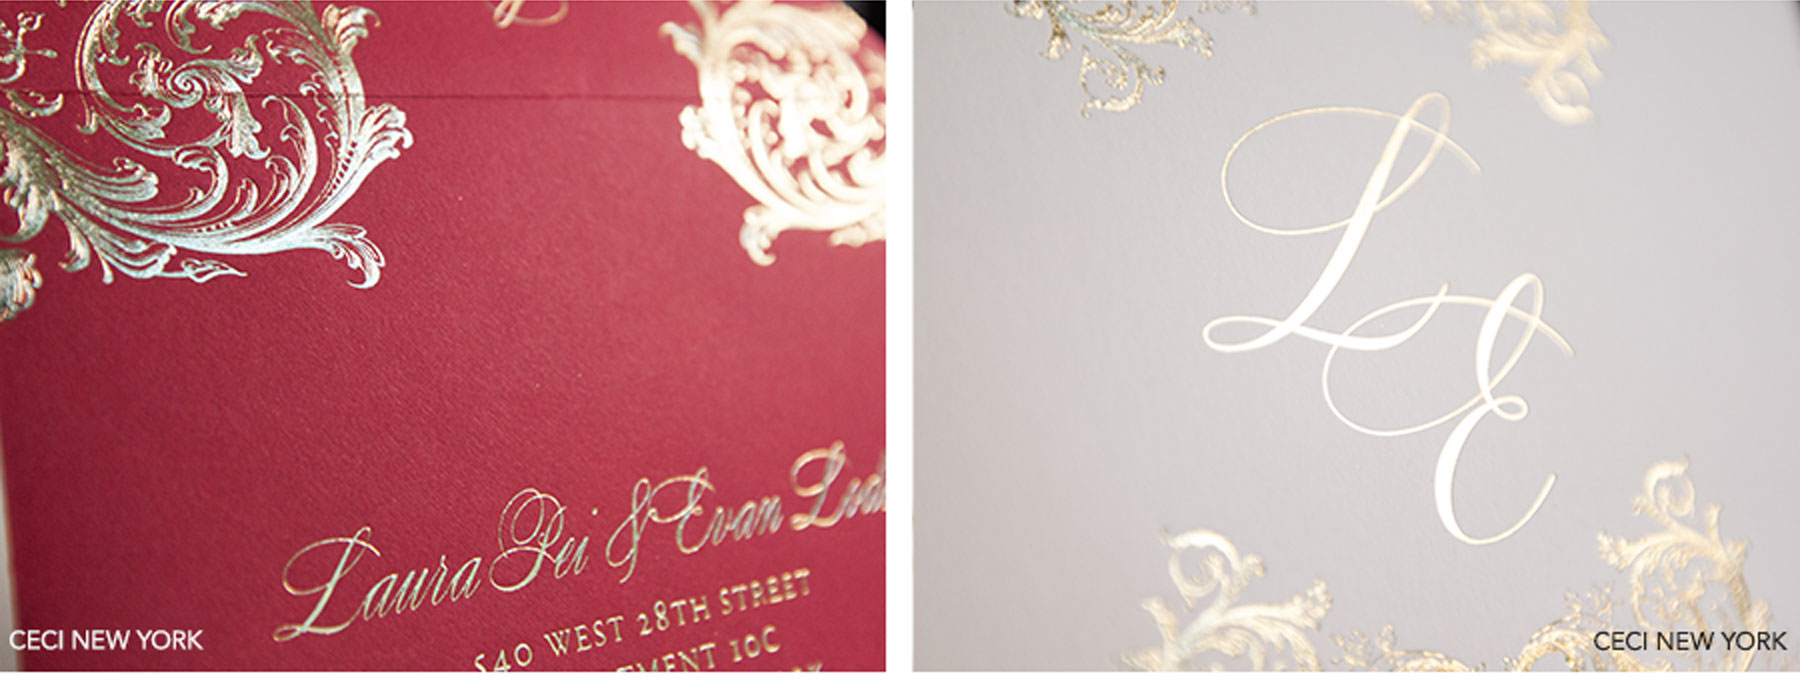 Luxury Wedding Invitations by Ceci New York - Our Muse - Ornate Red and Gold Wedding at the St. Regis - Be inspired by Laura & Evan's ornate red and gold wedding at the St. Regis in New York City. - Ceci New York Luxury Wedding Invitations - ceci new york, wedding invitation, luxury invitations, couture, letterpress printing, custom design, ornate invitation, gold foil, monogram, st. regis, new york city